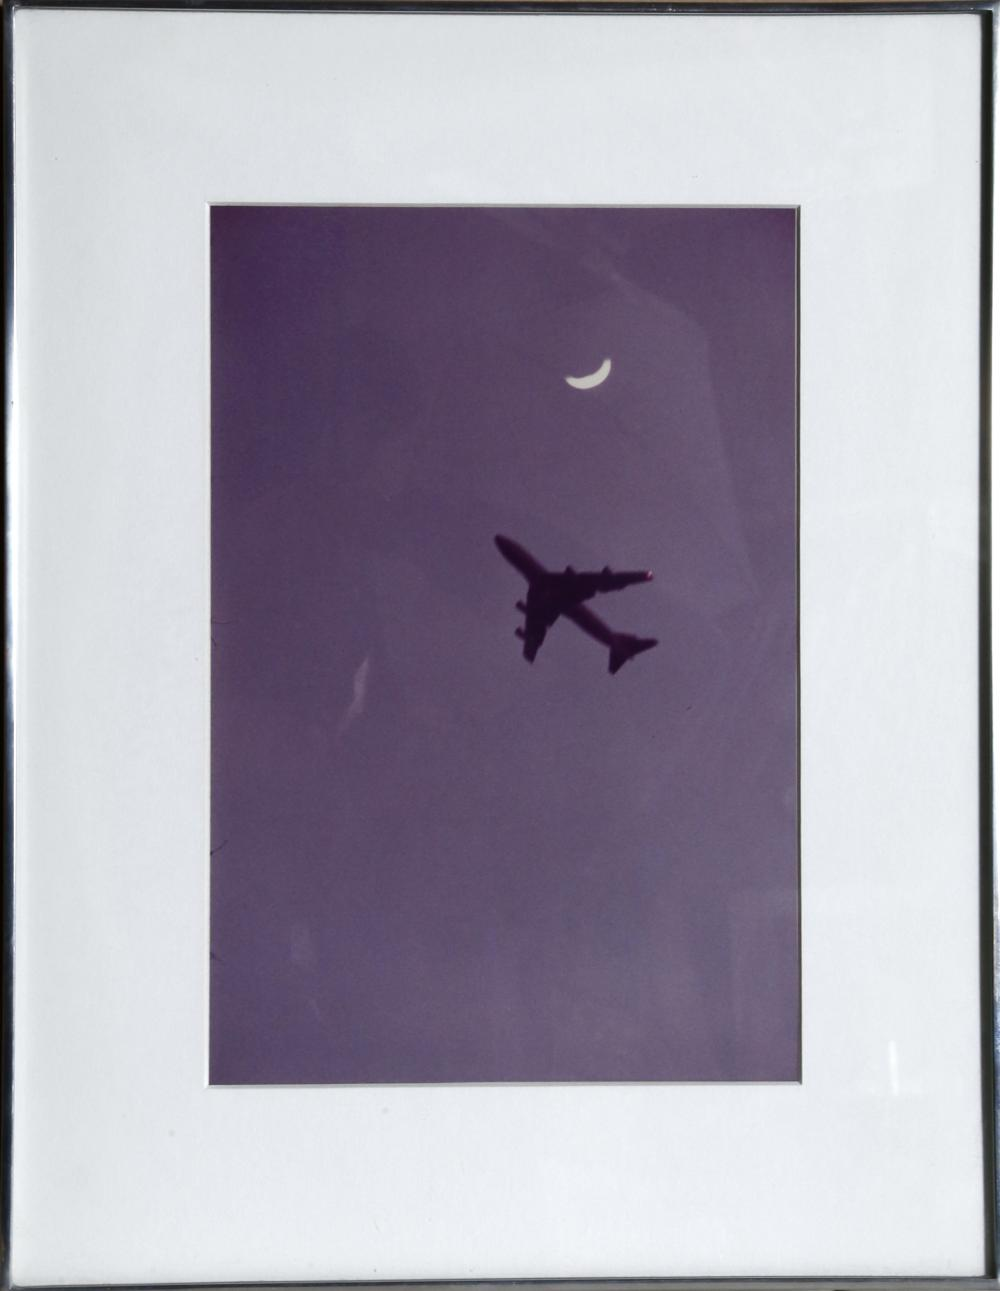 Alan Dennis, Jet and Moon, Color Photograph